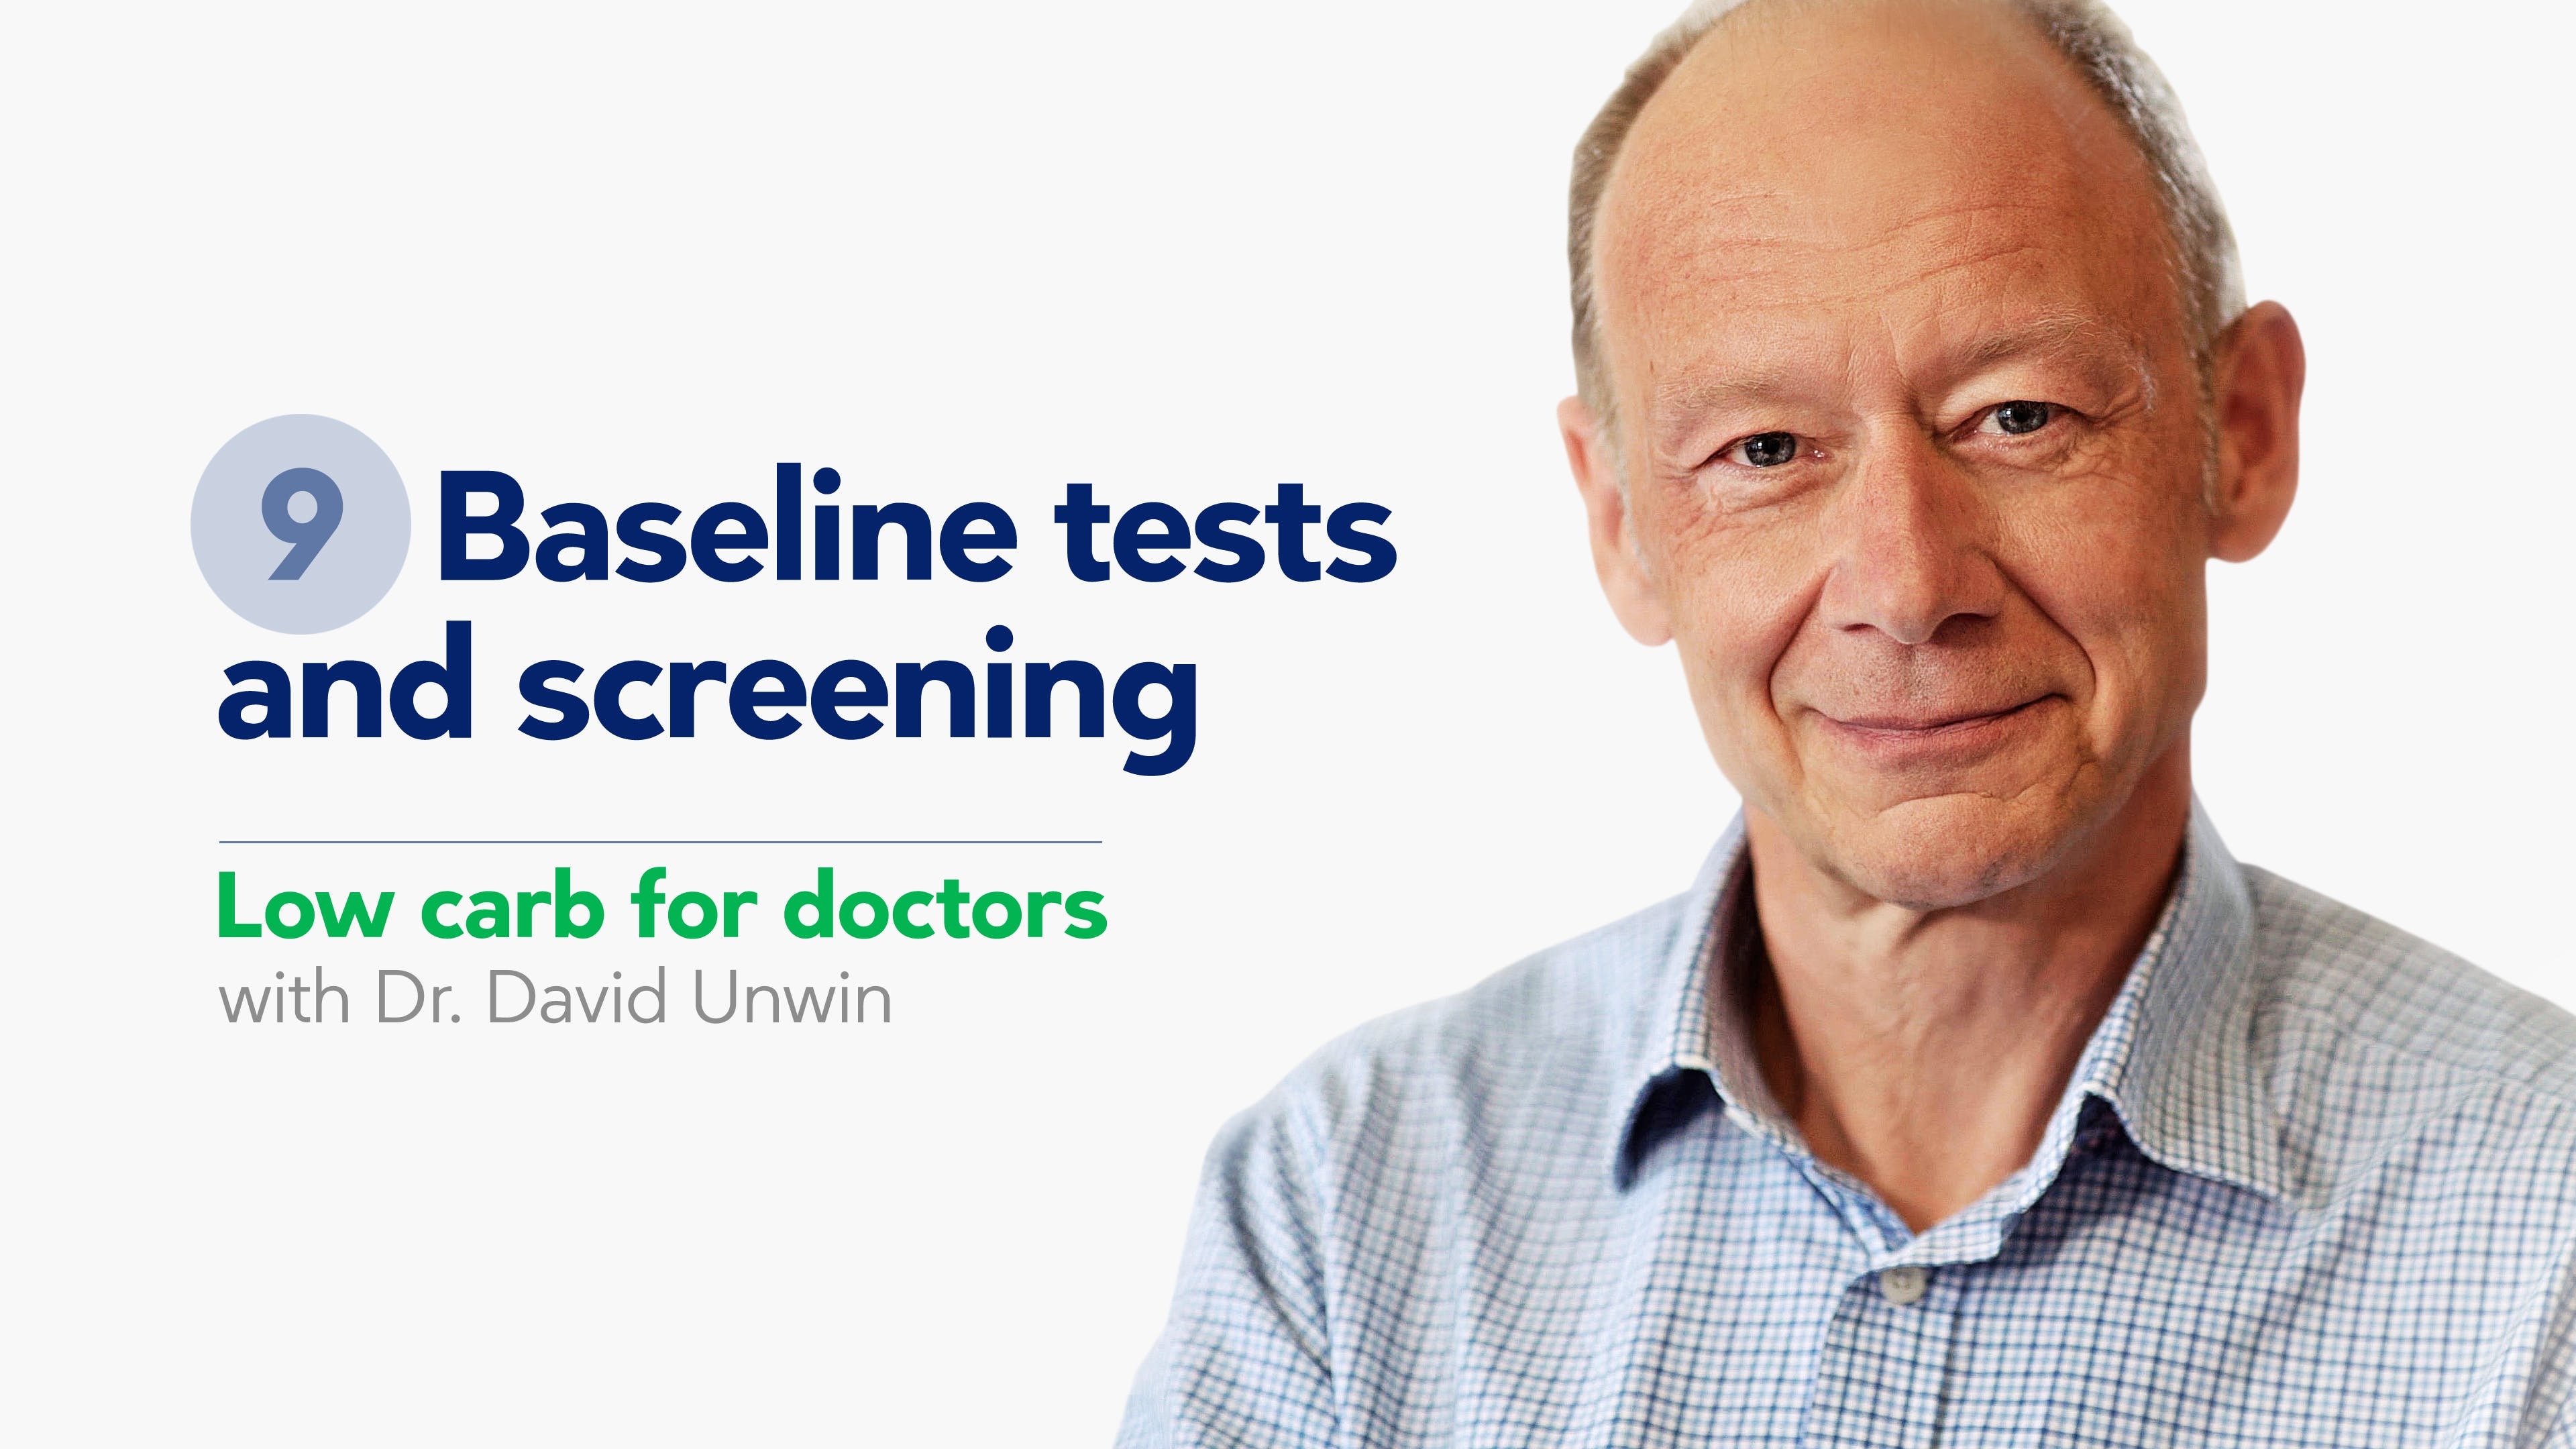 Low carb for doctors: Baseline tests and screening